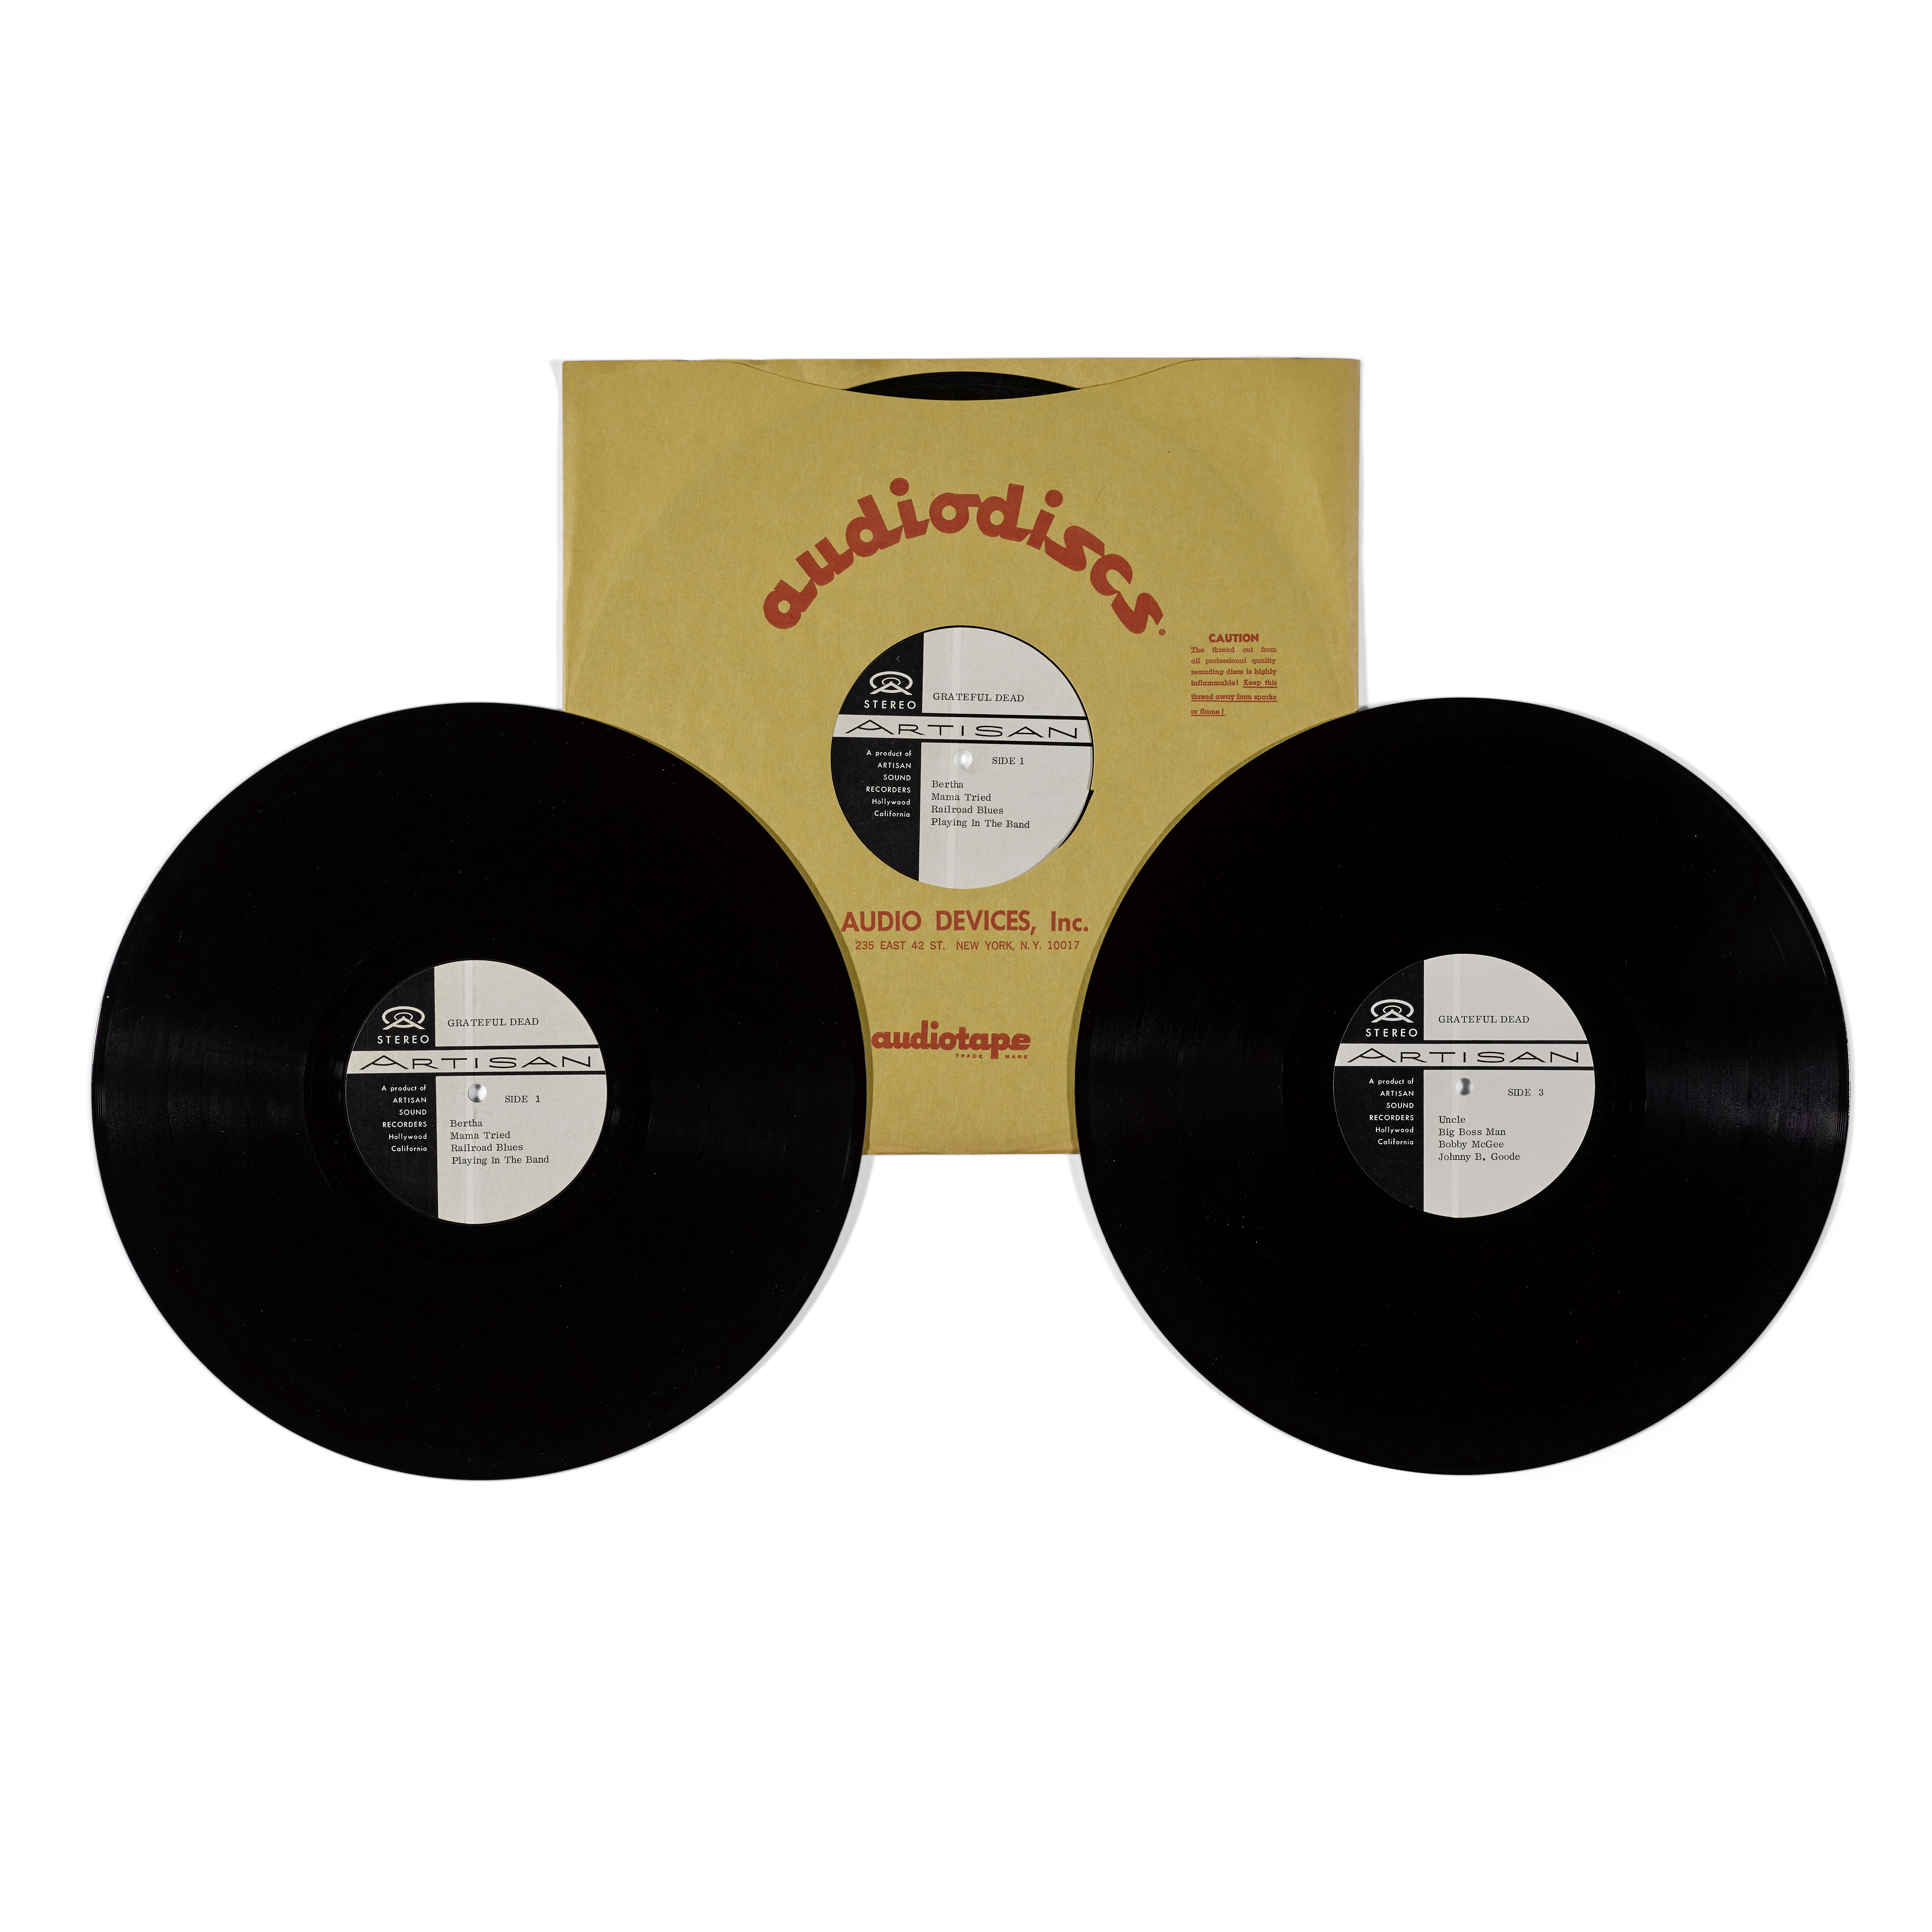 Lot 321 - THREE JERRY GARCIA ACETATE RECORDINGS AND TWO TEST PRESSINGS OF THE LIVE DOUBLE ALBUM GRATEFUL DE...